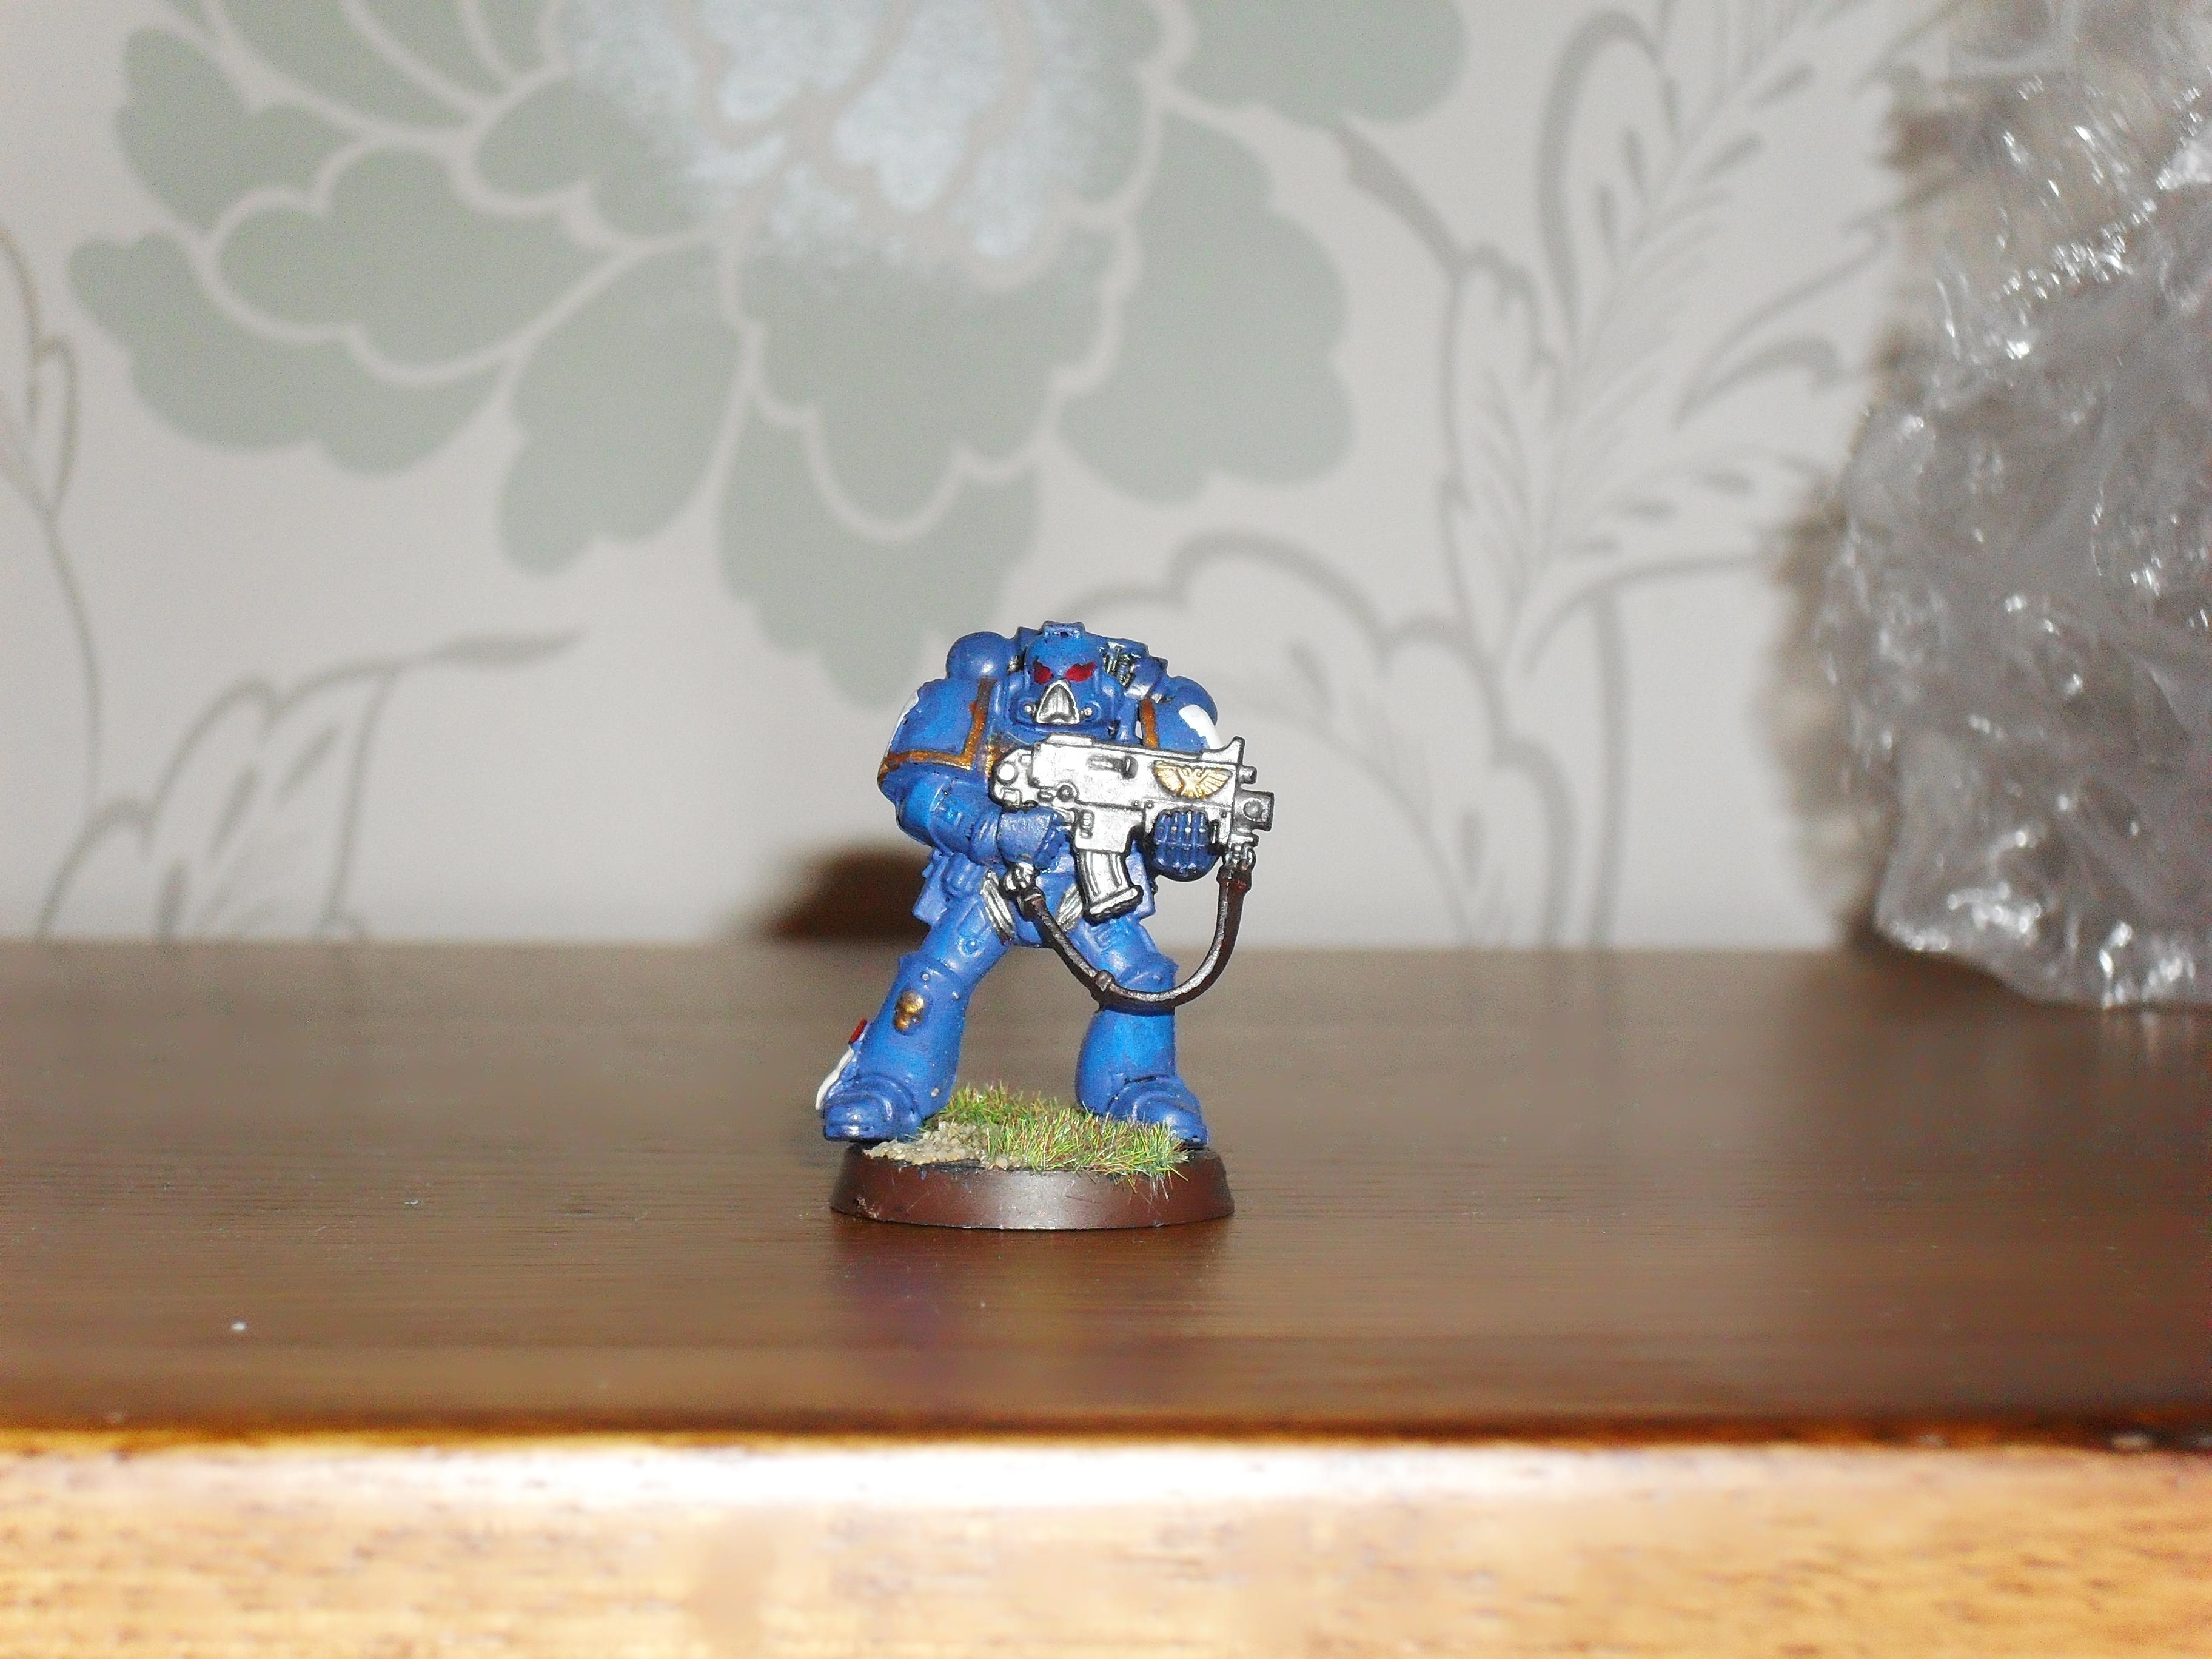 One of my space marines